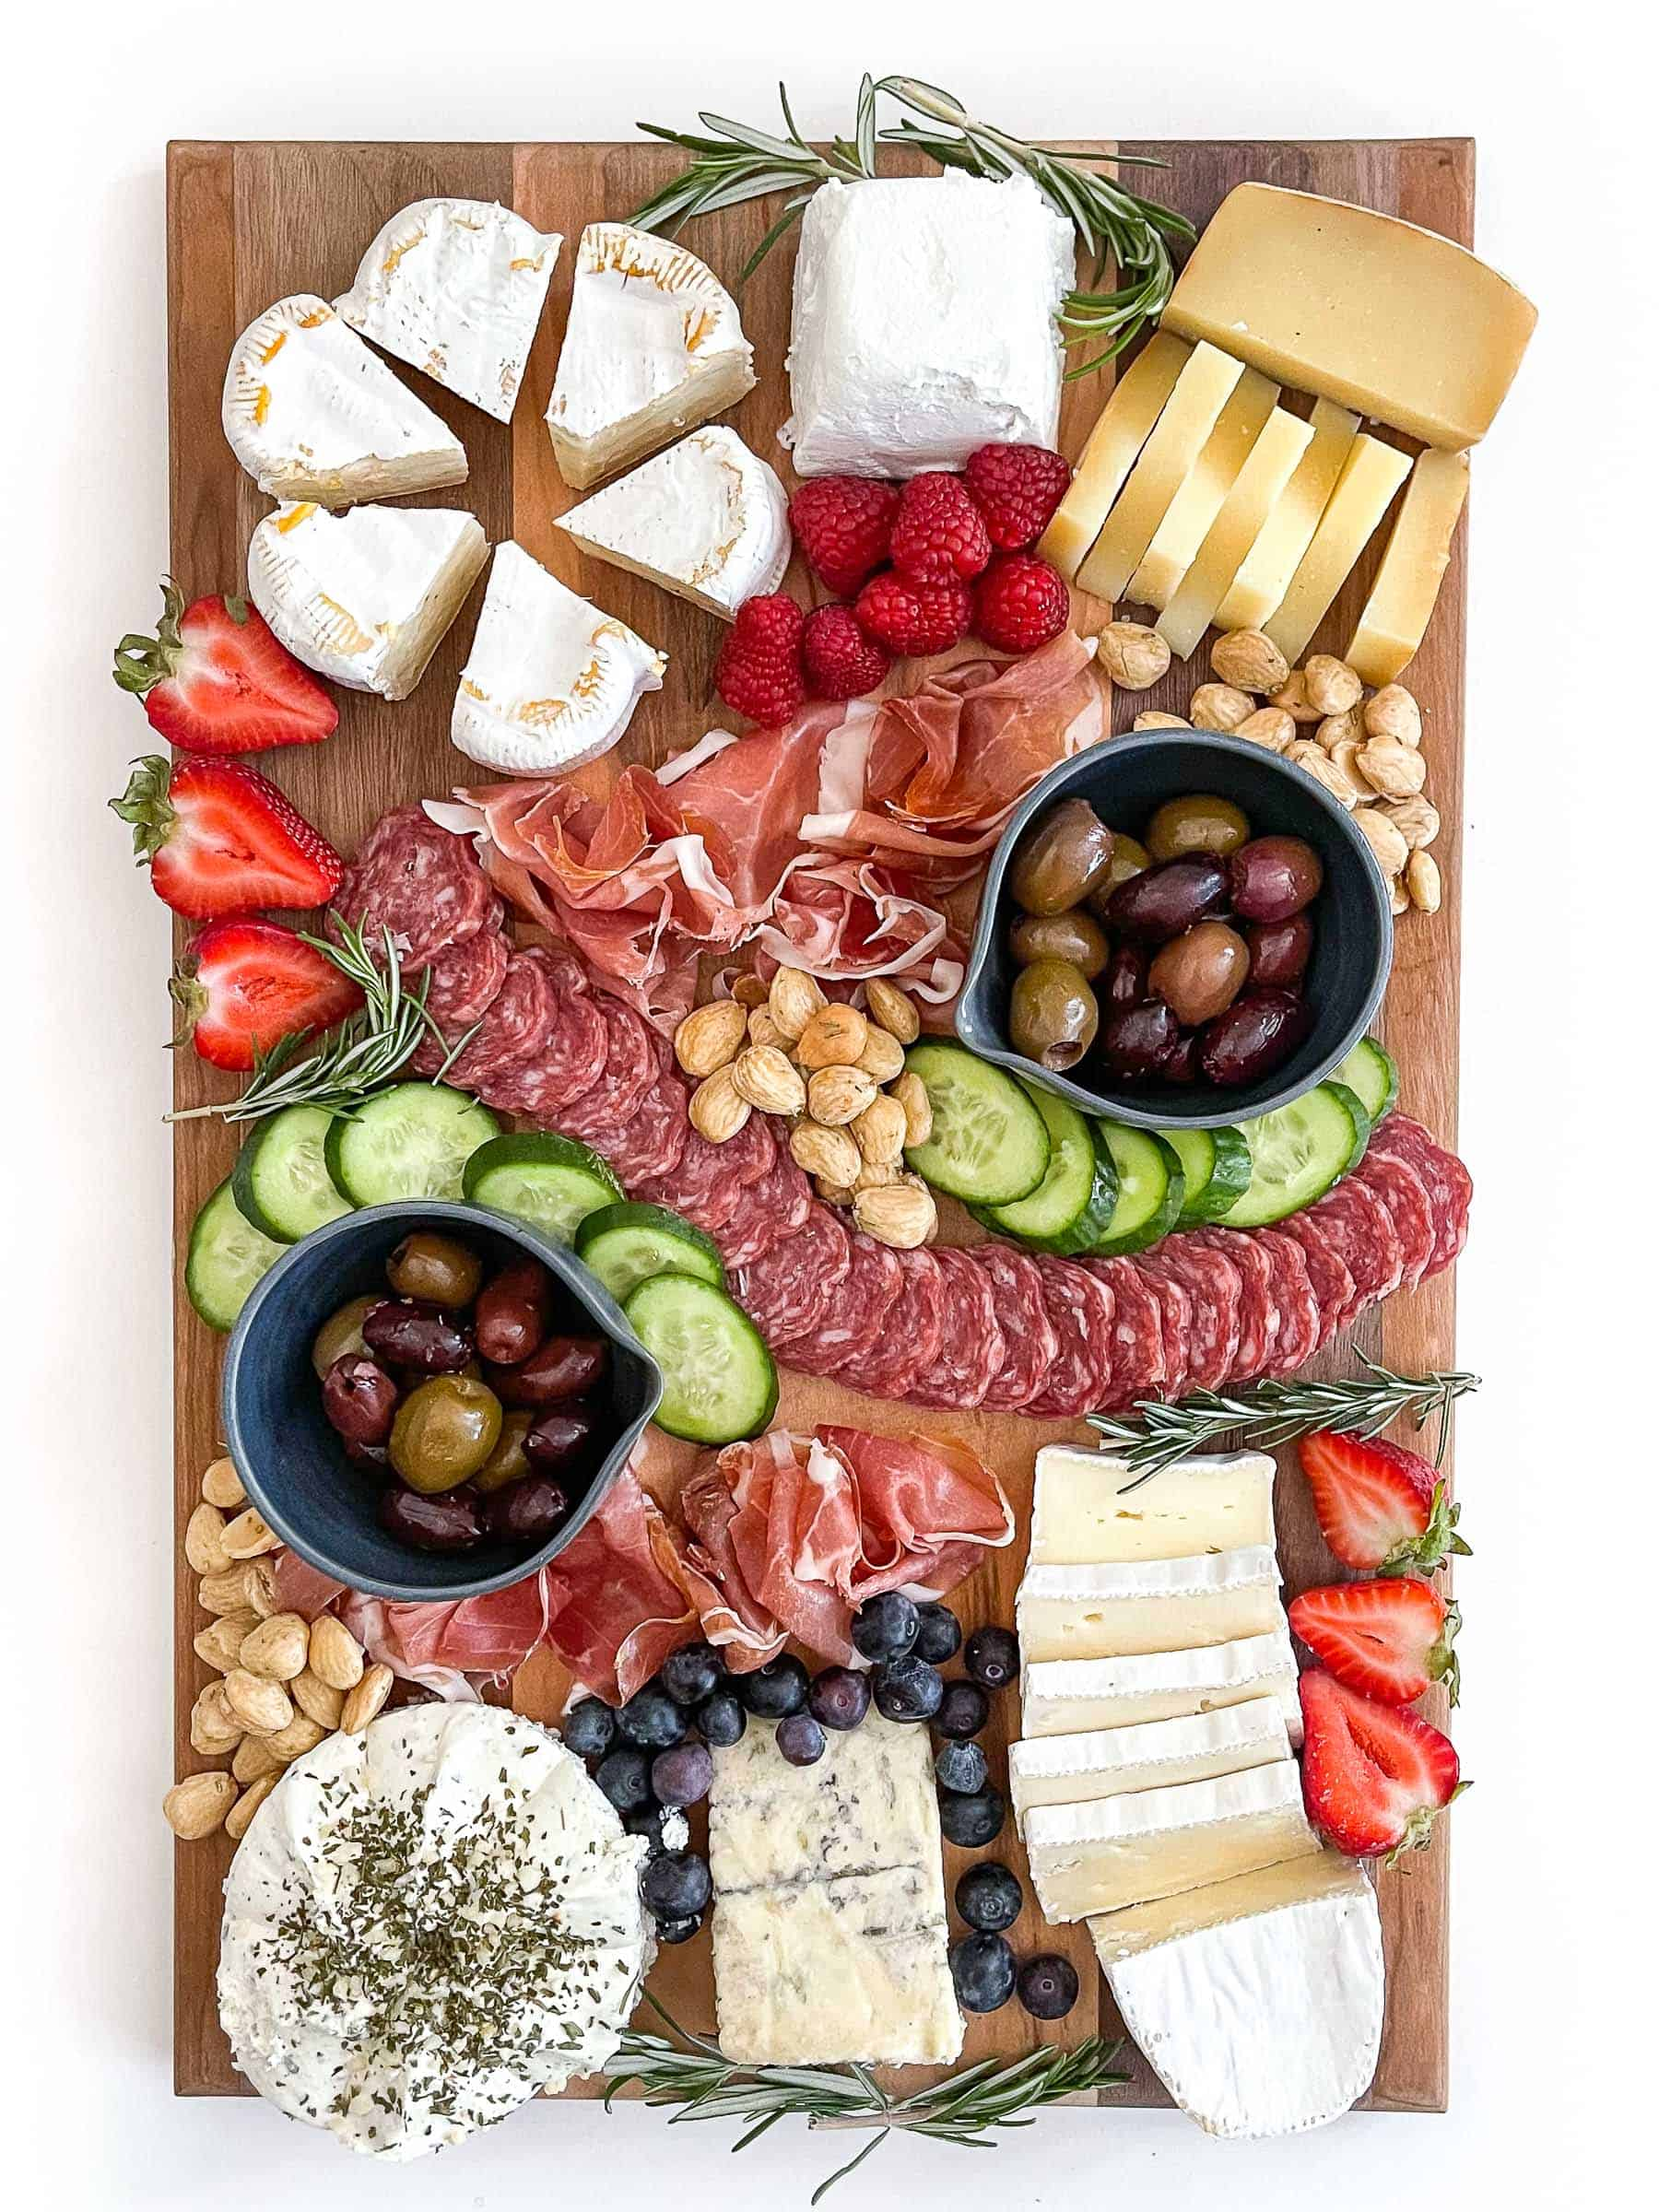 Keto friendly cheese board with sliced cheese, salami, cucumber, nuts, olives and berries